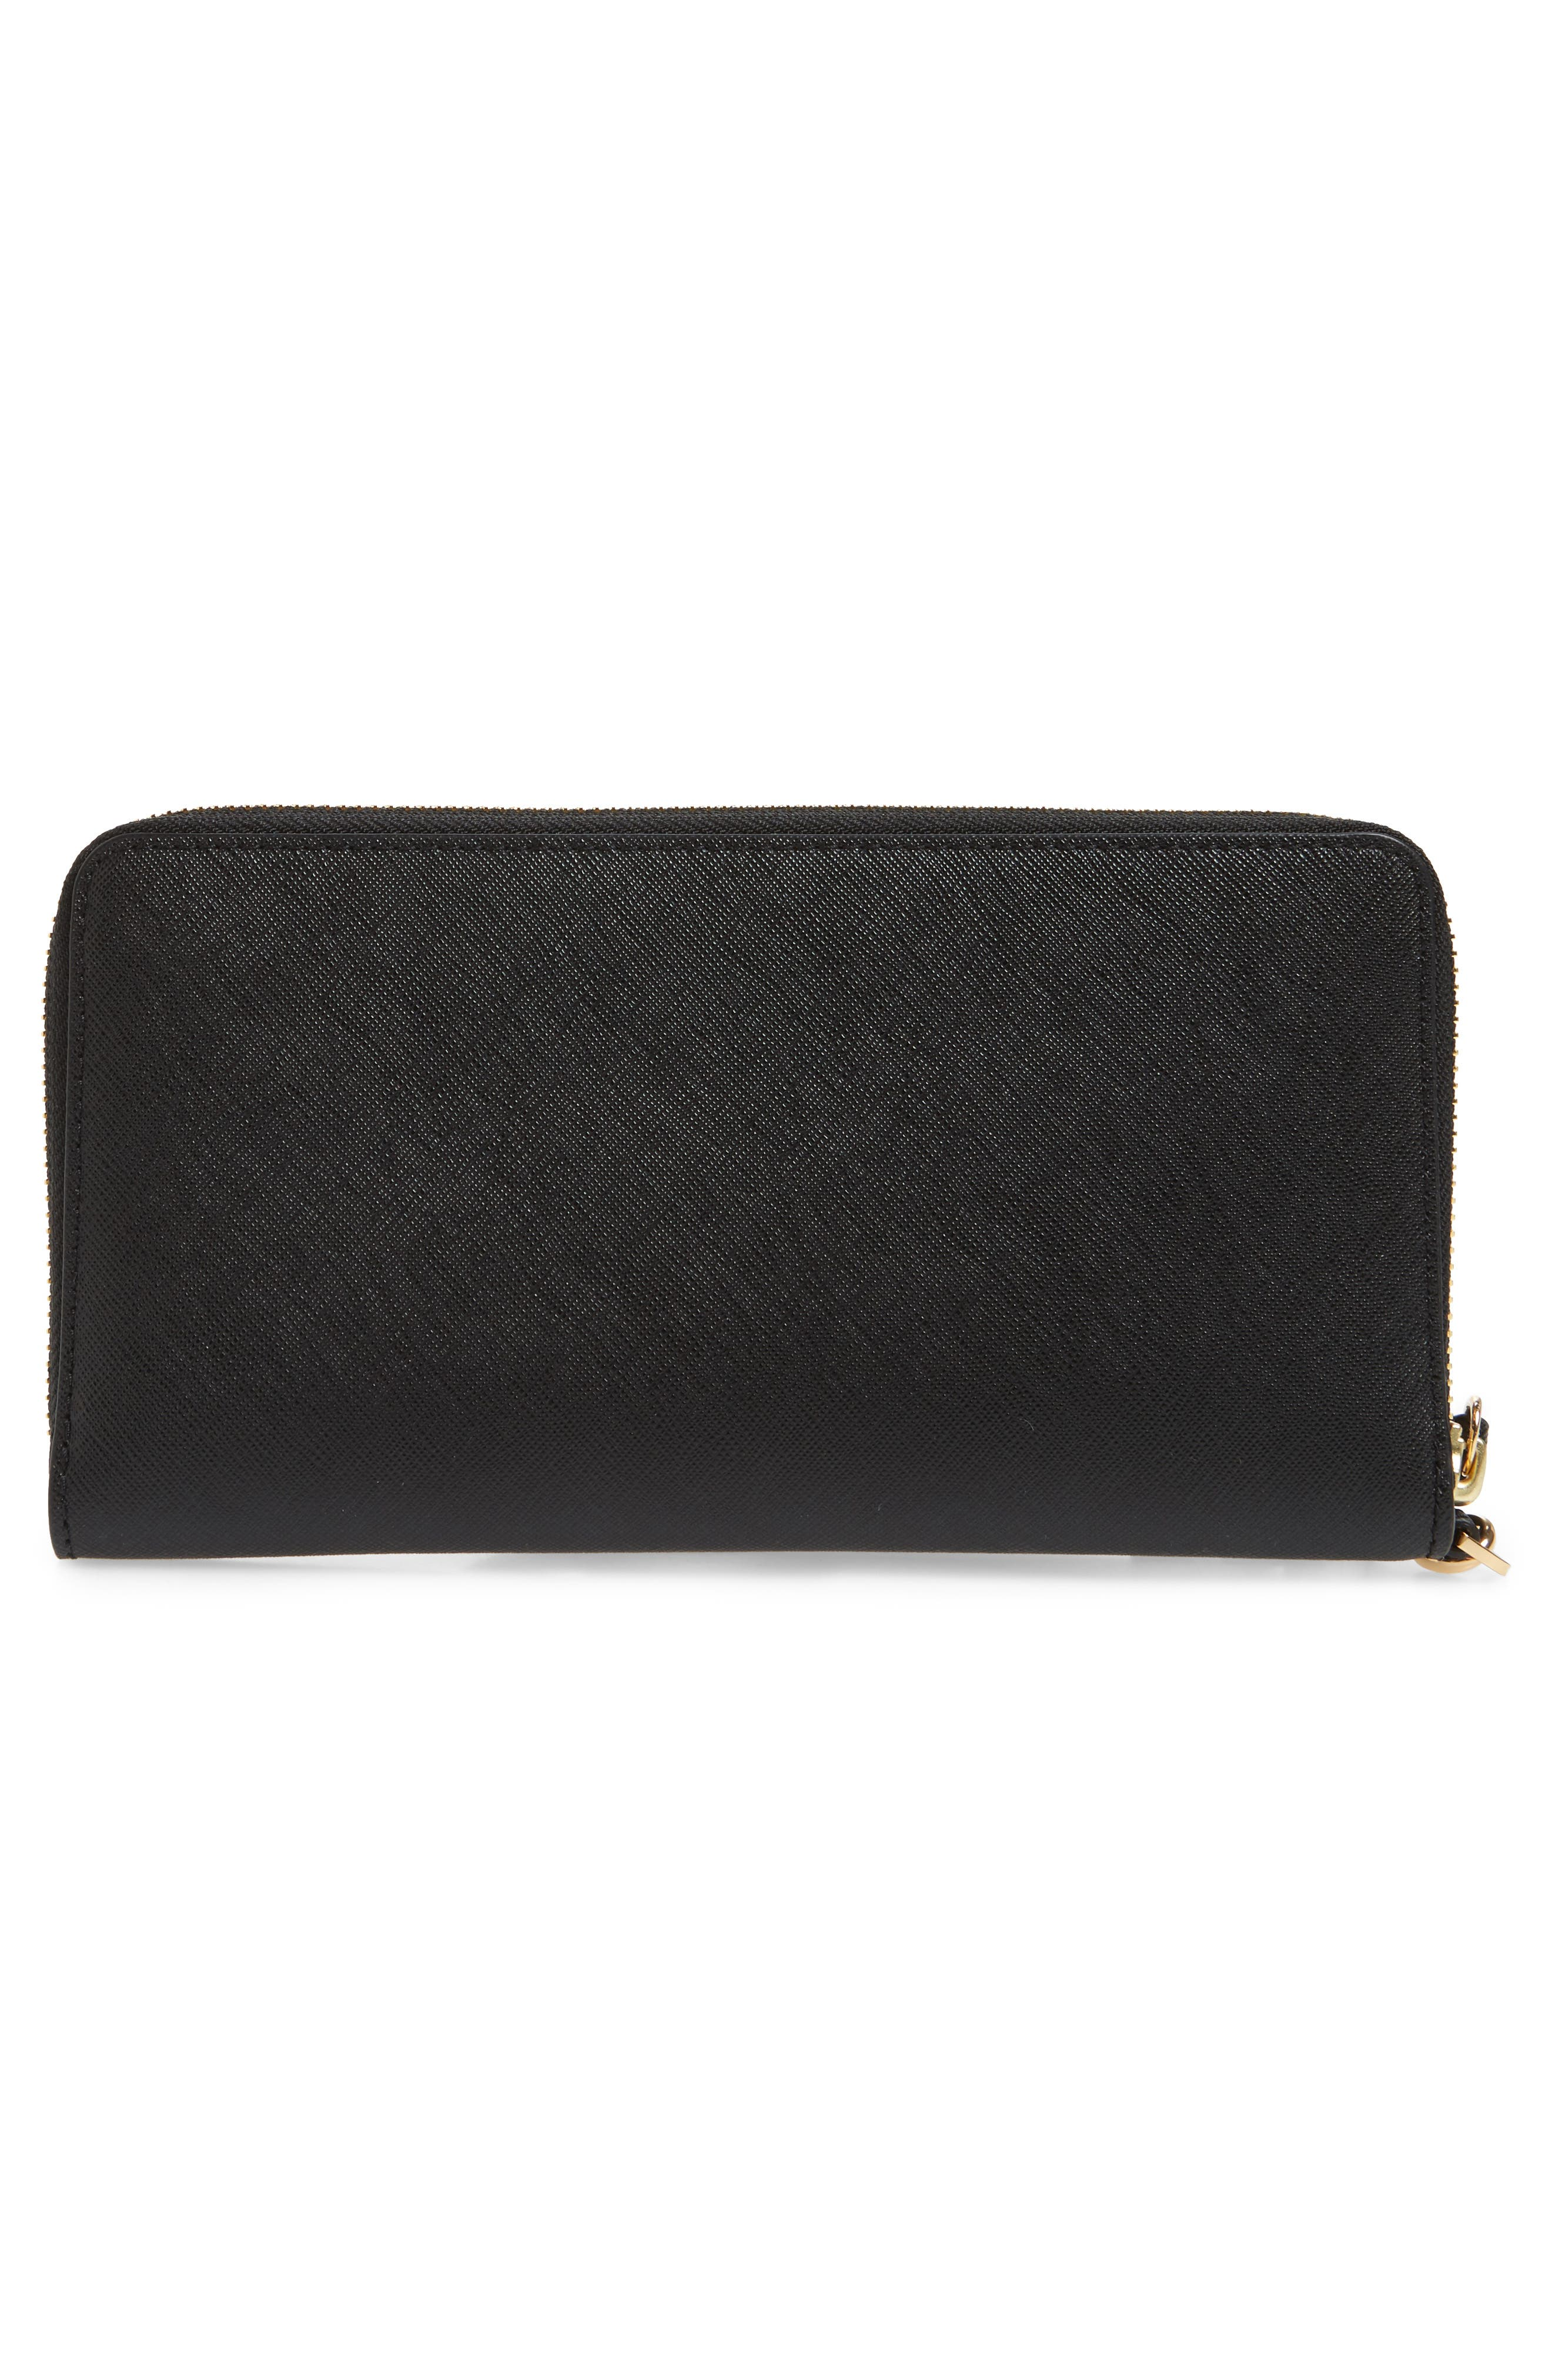 TORY BURCH, Robinson Leather Passport Continental Wallet, Alternate thumbnail 3, color, BLACK / ROYAL NAVY